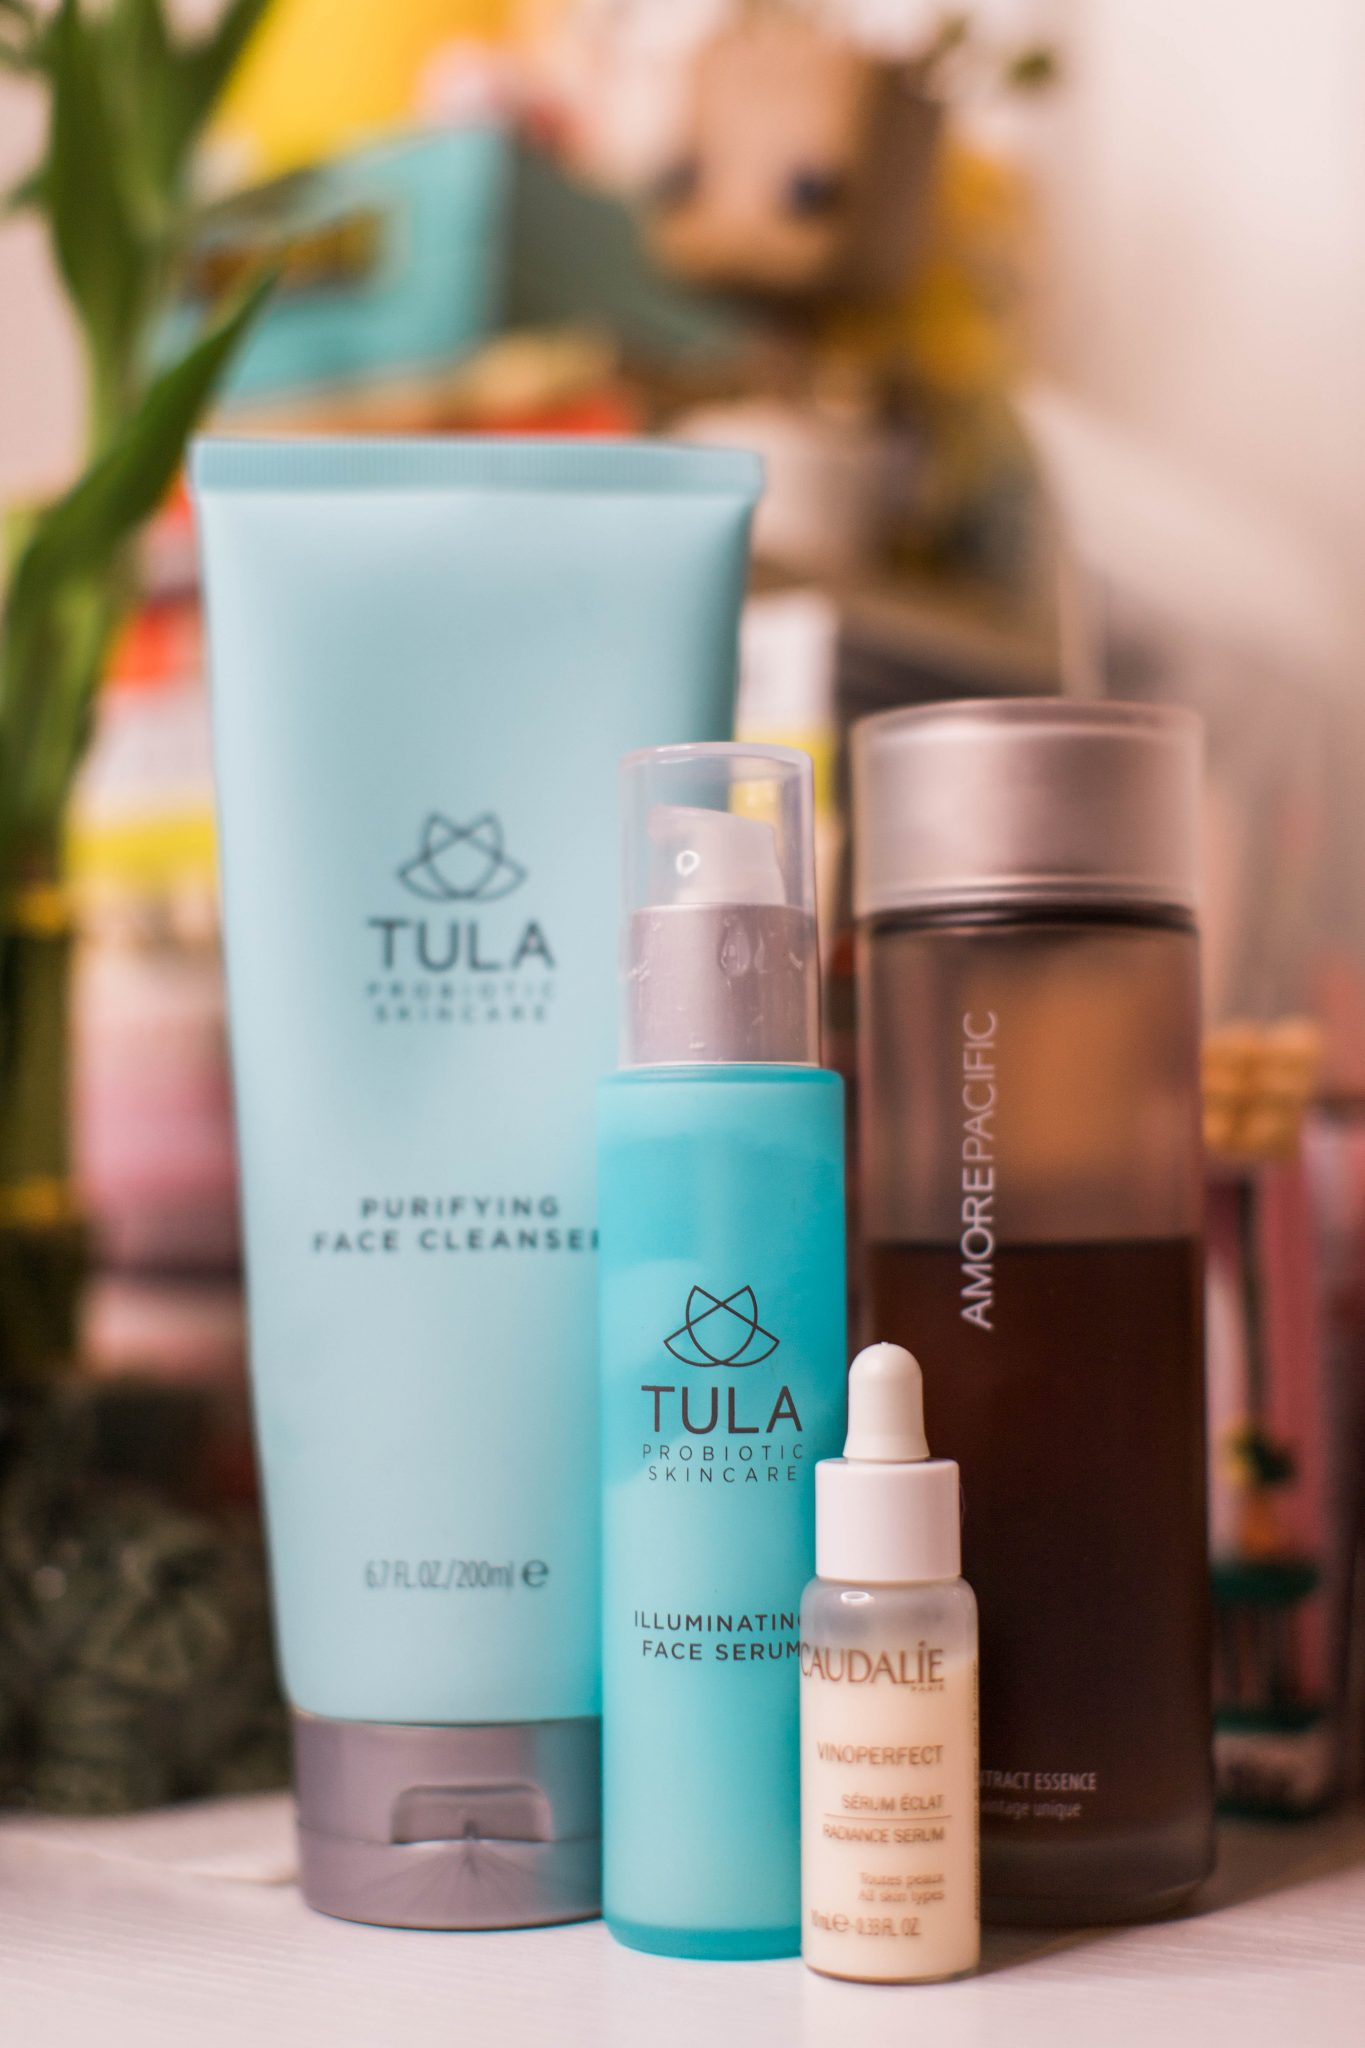 Sephora | Tula | My 2019 Winter Skincare & Makeup Routine featured by top NYC beauty blogger Live Laugh Linda